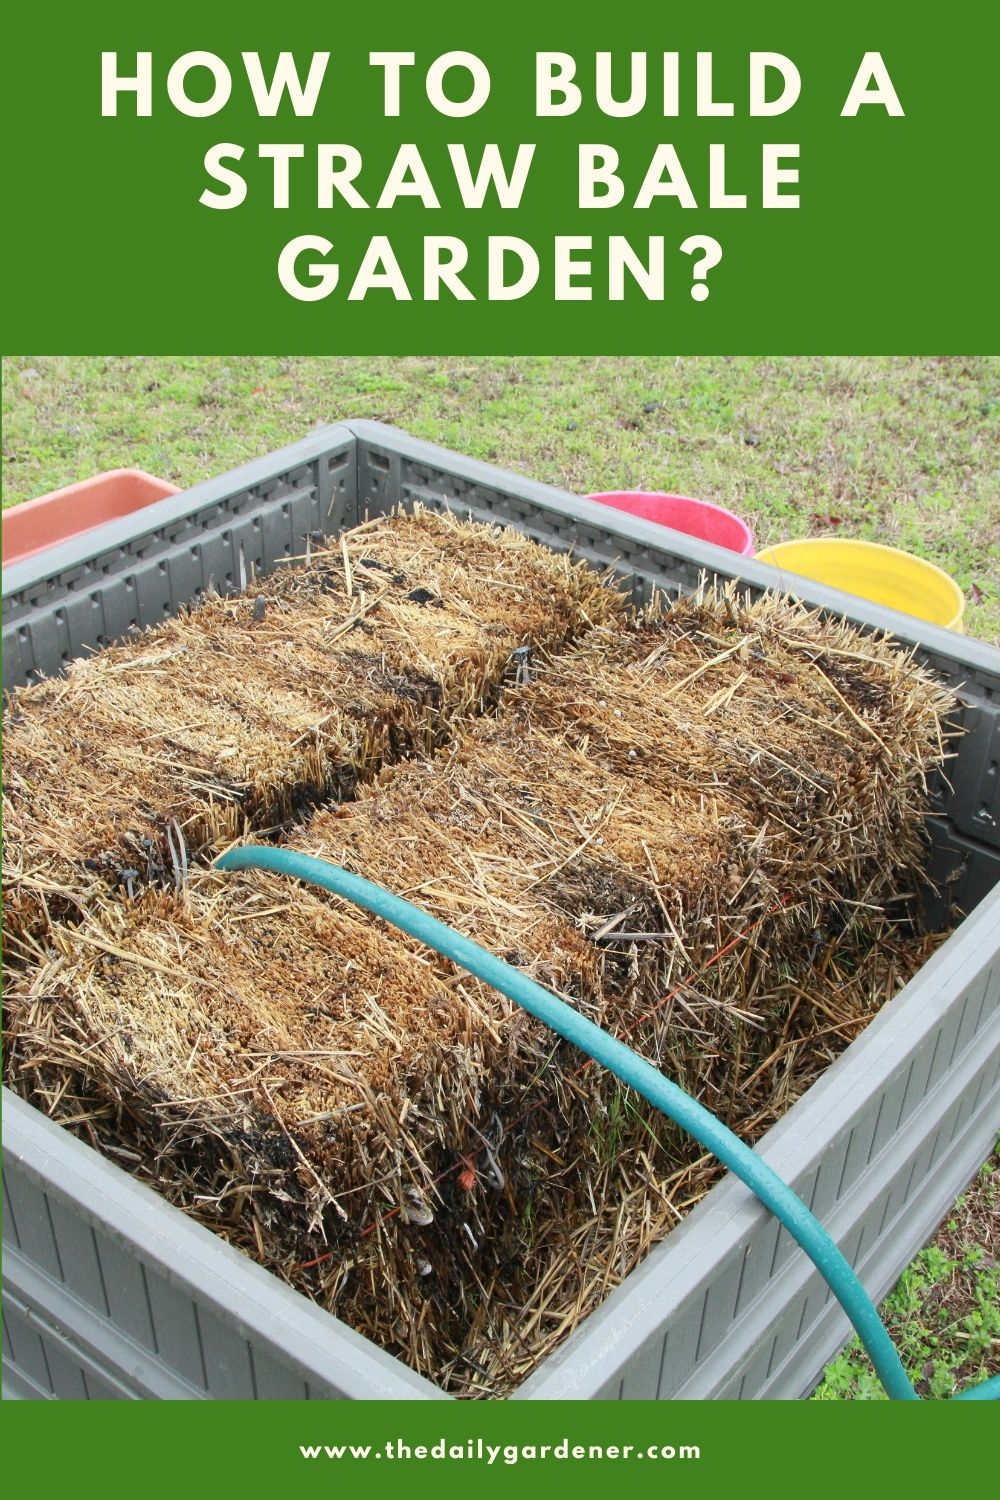 How to Build a Straw Bale Garden 2